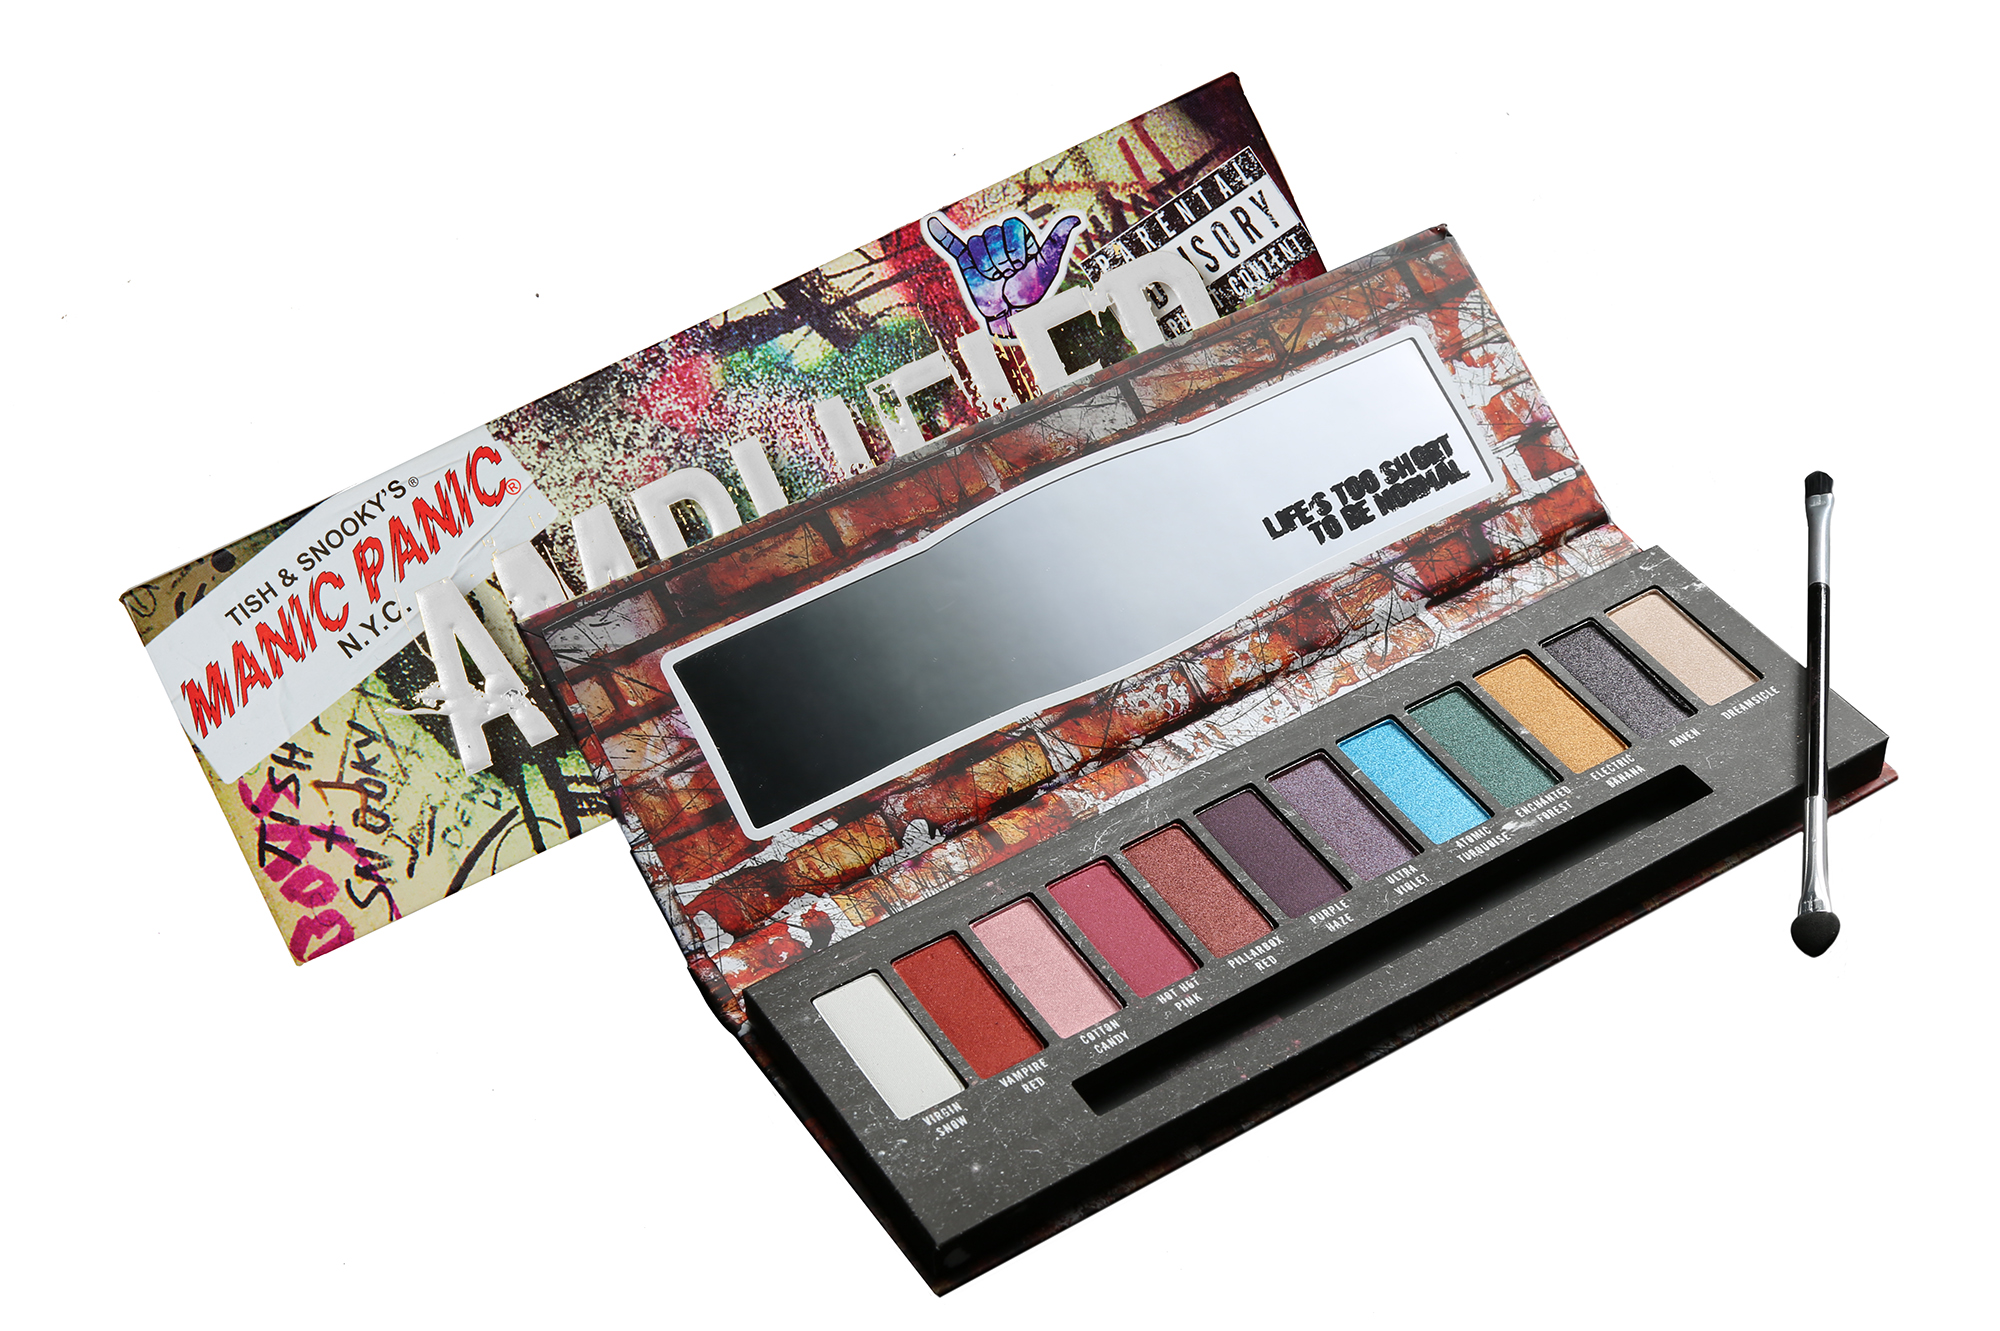 A Nickelodeon-themed eyeshadow palette is available at Hot